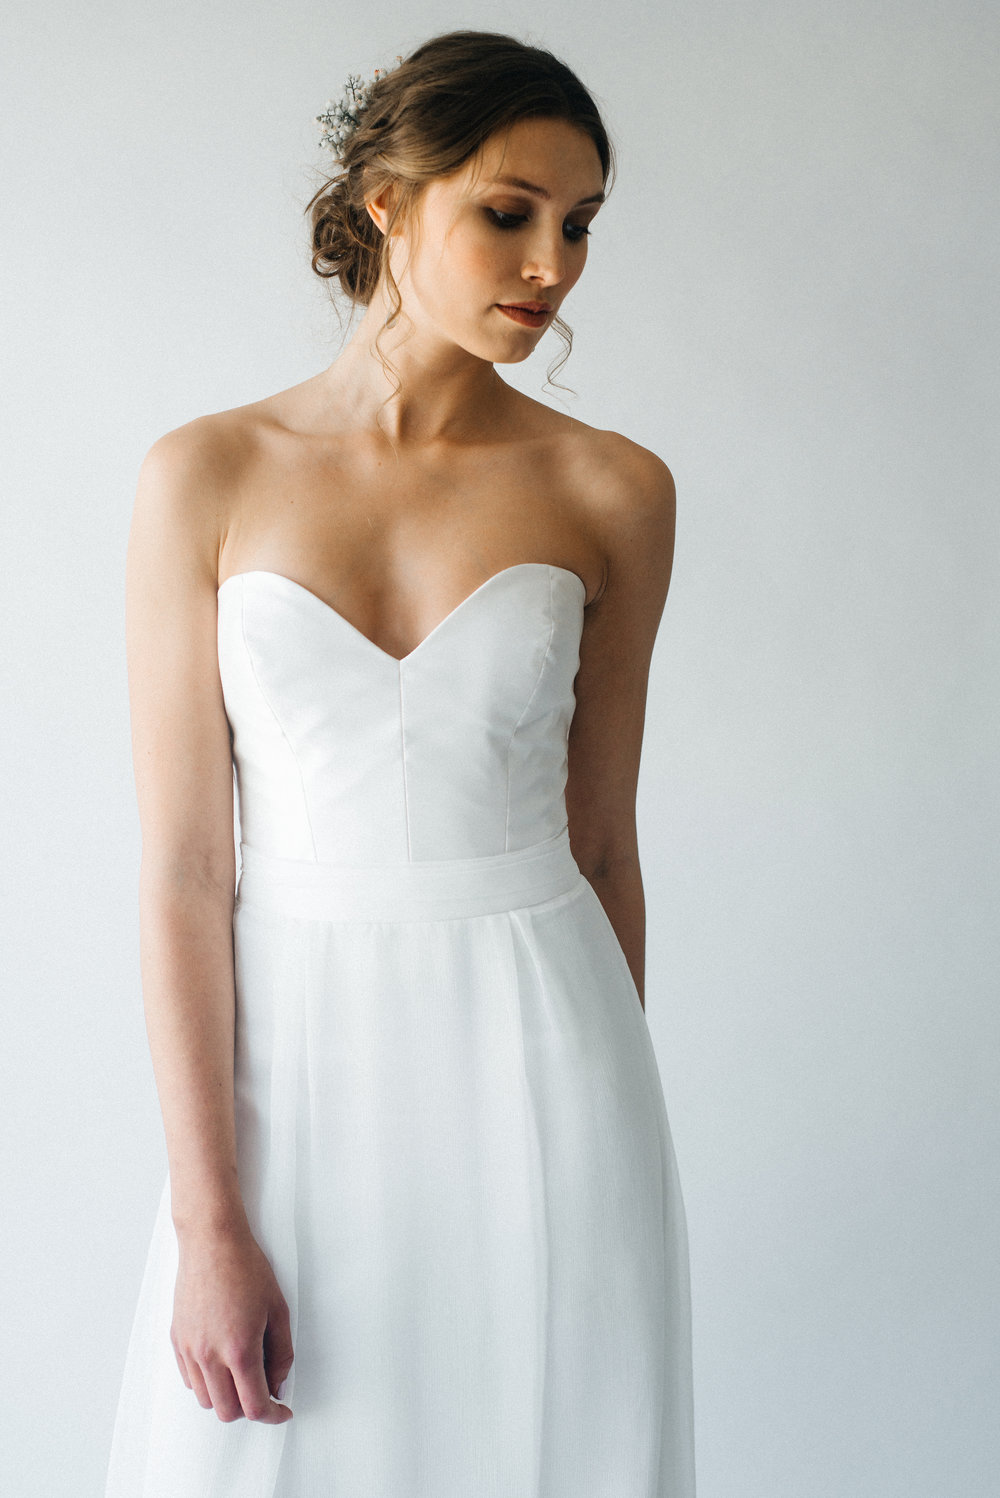 Strapless wedding dress Falmouth.jpg